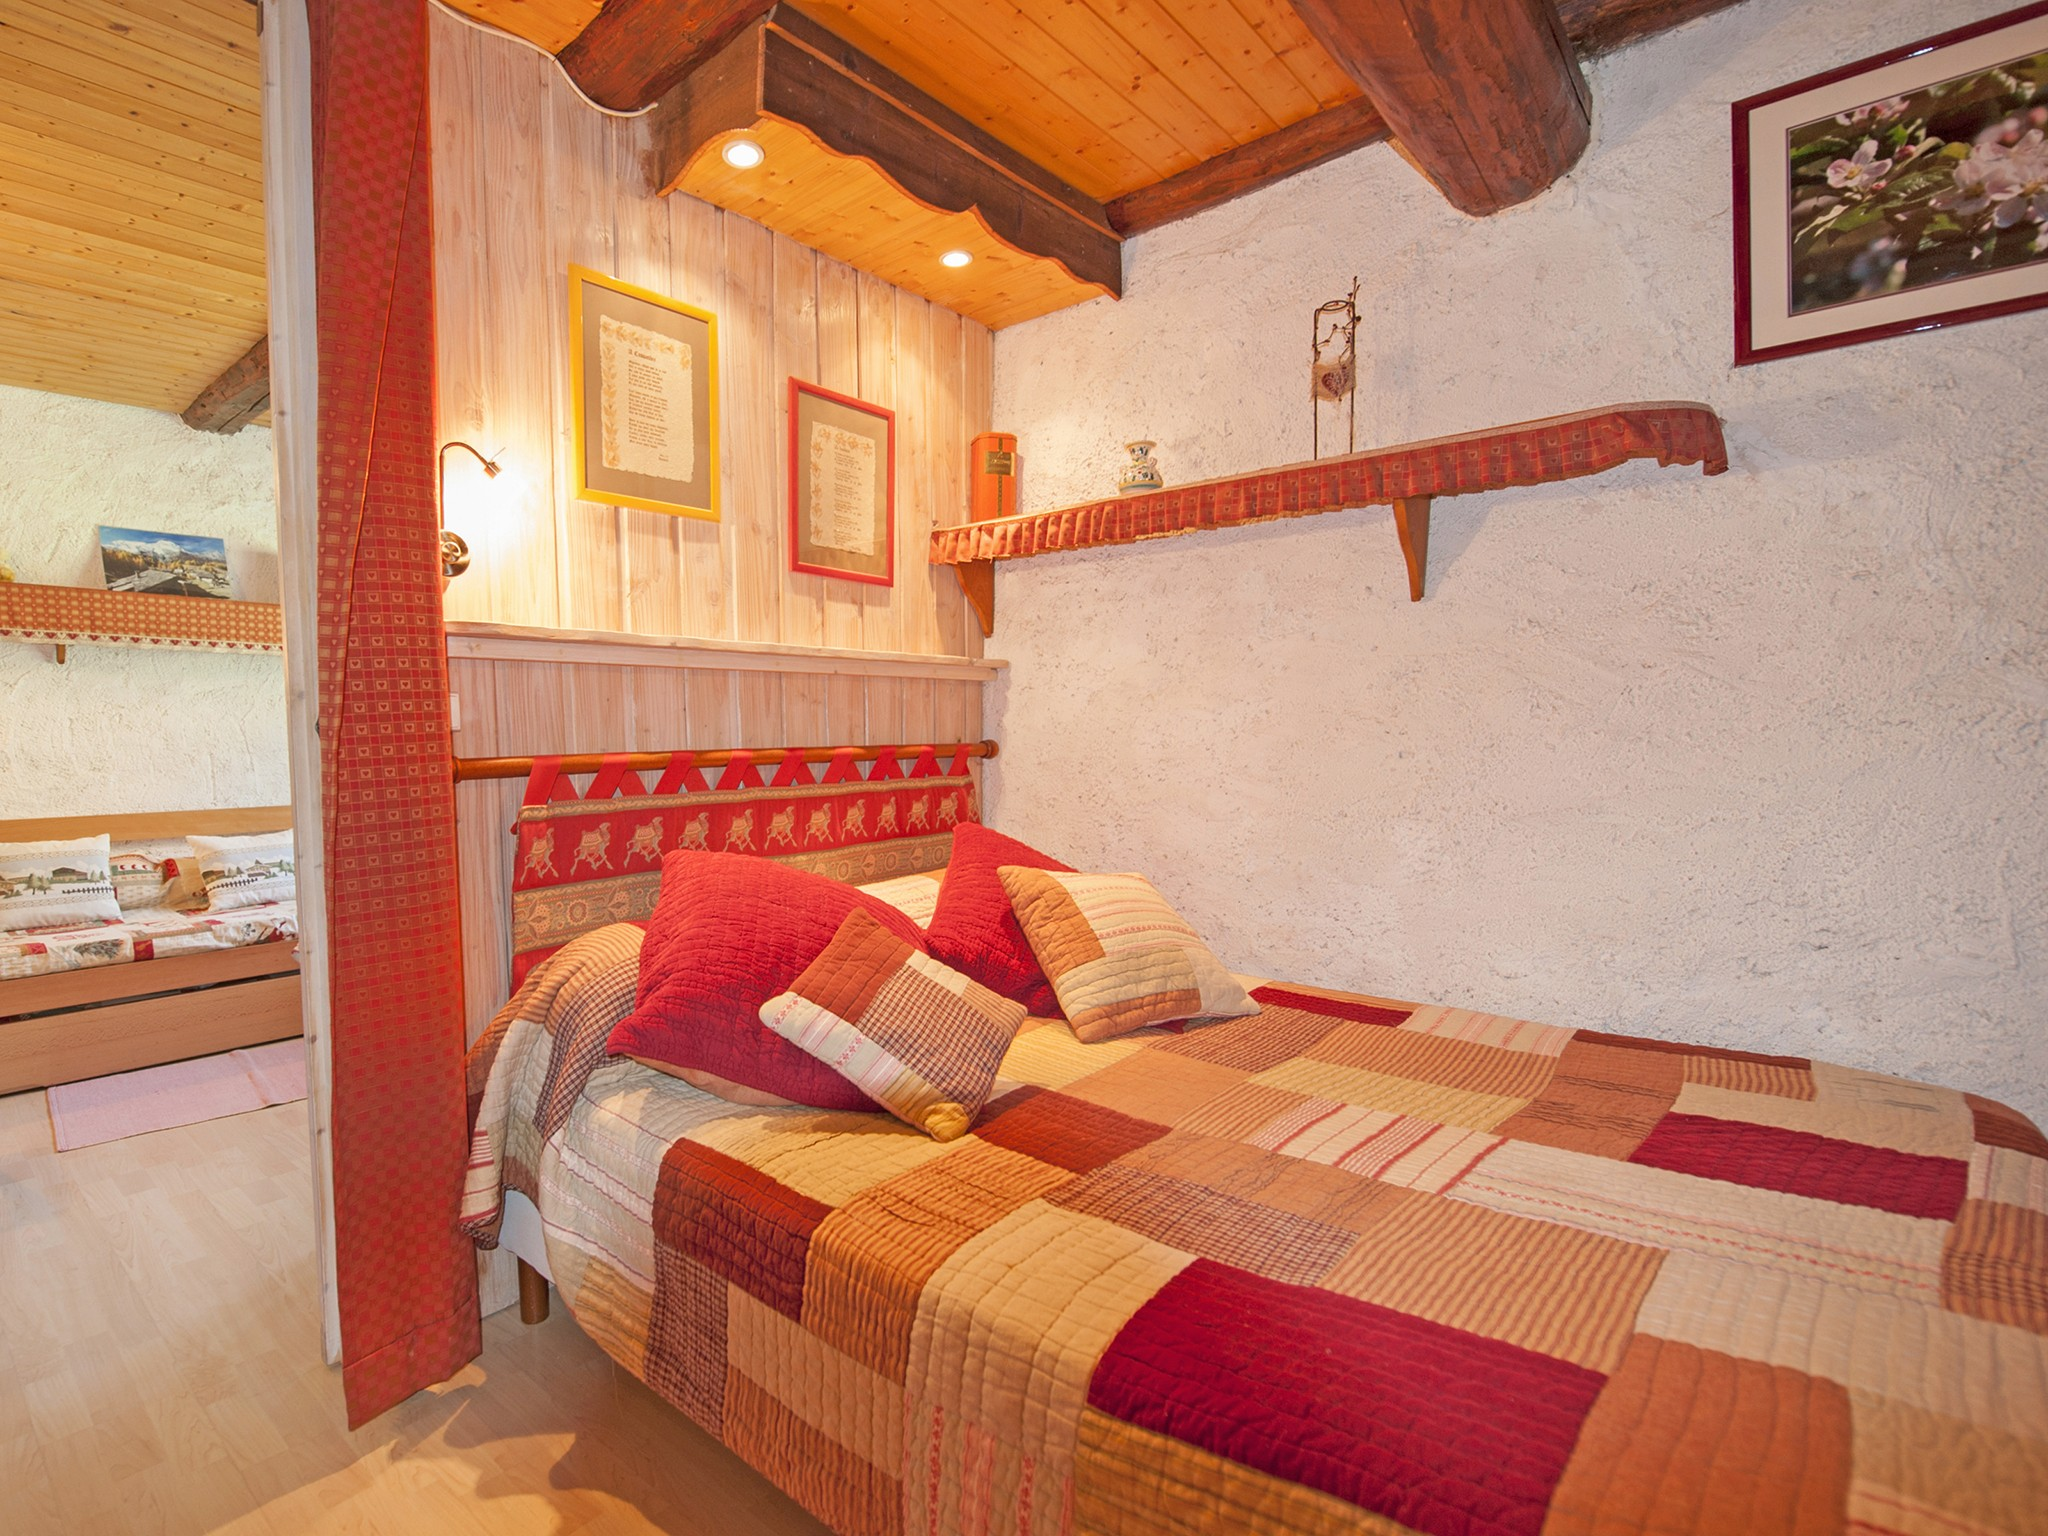 Chalet Vieux Moulin - bedroom